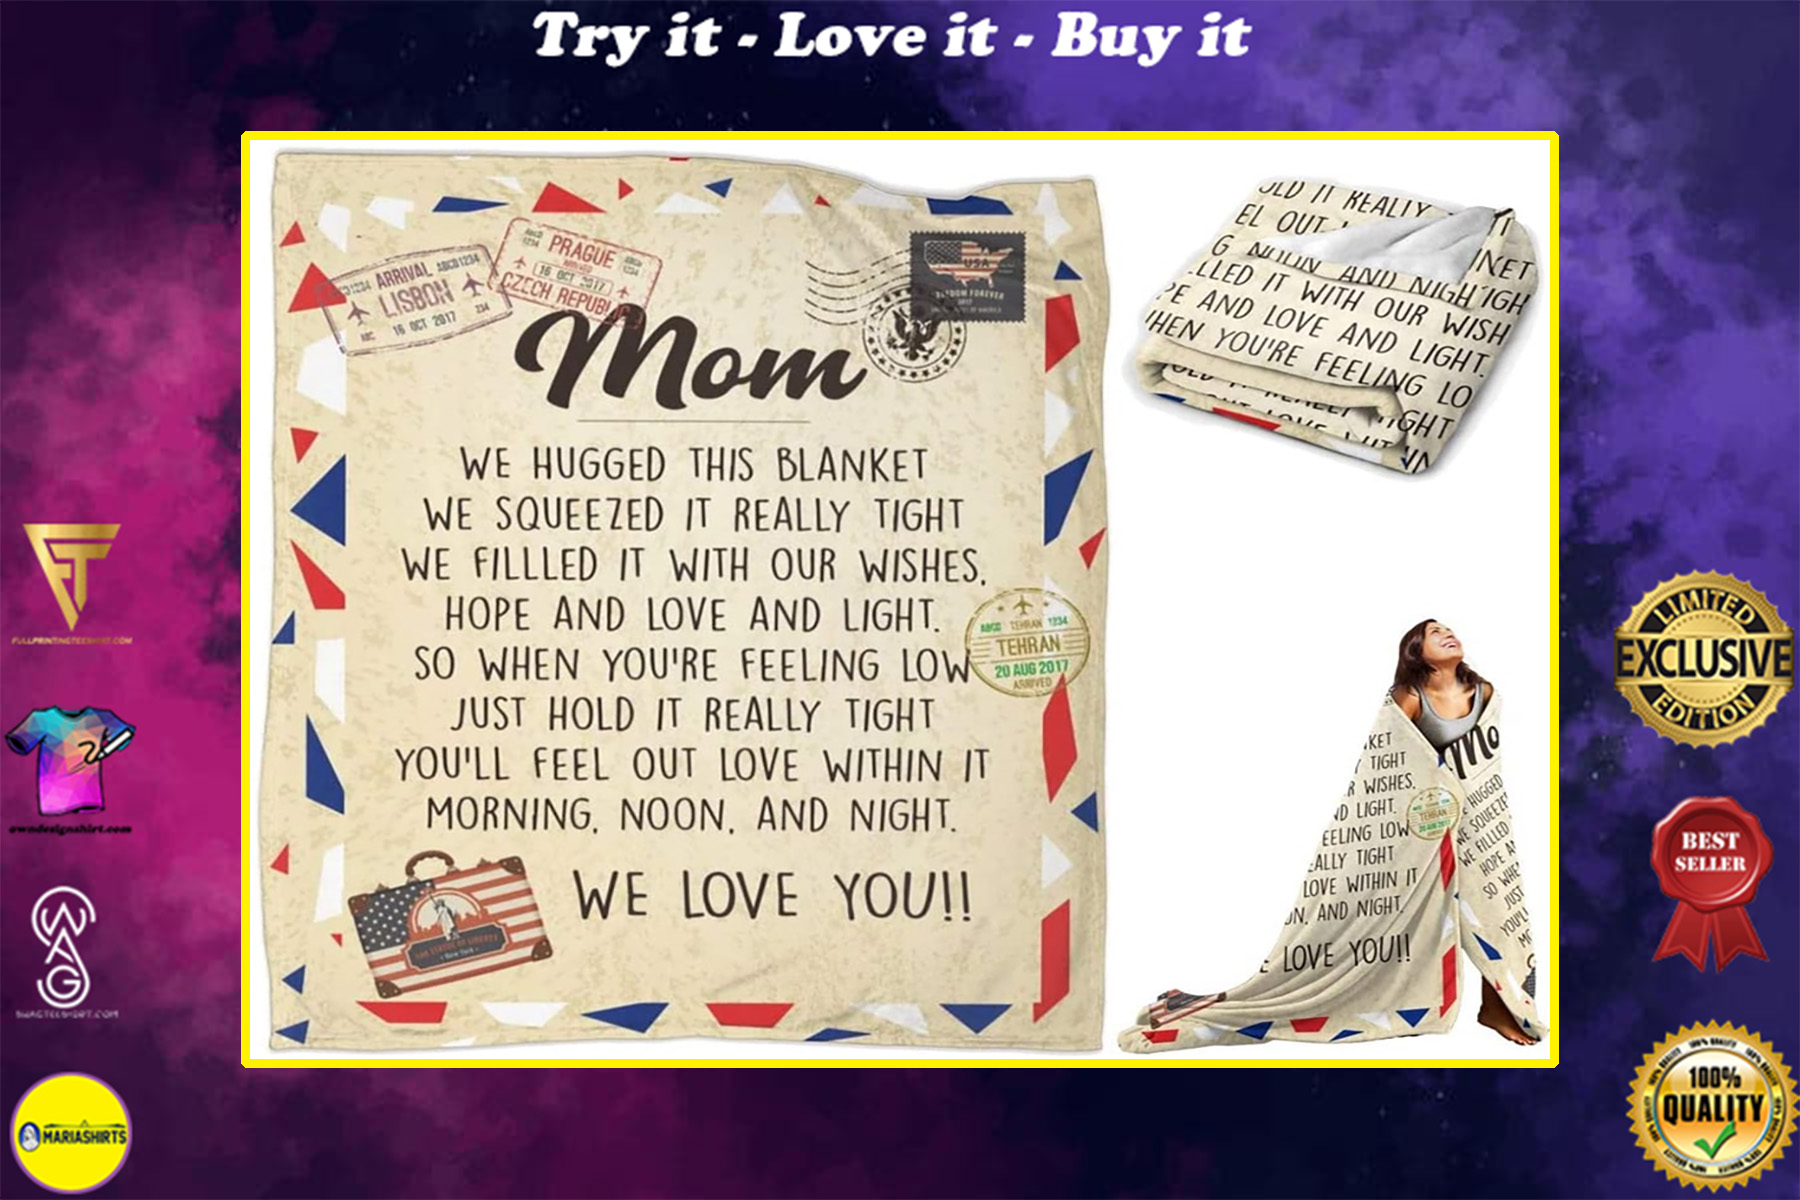 love letter to mom we hugged this blanket we love you blanket